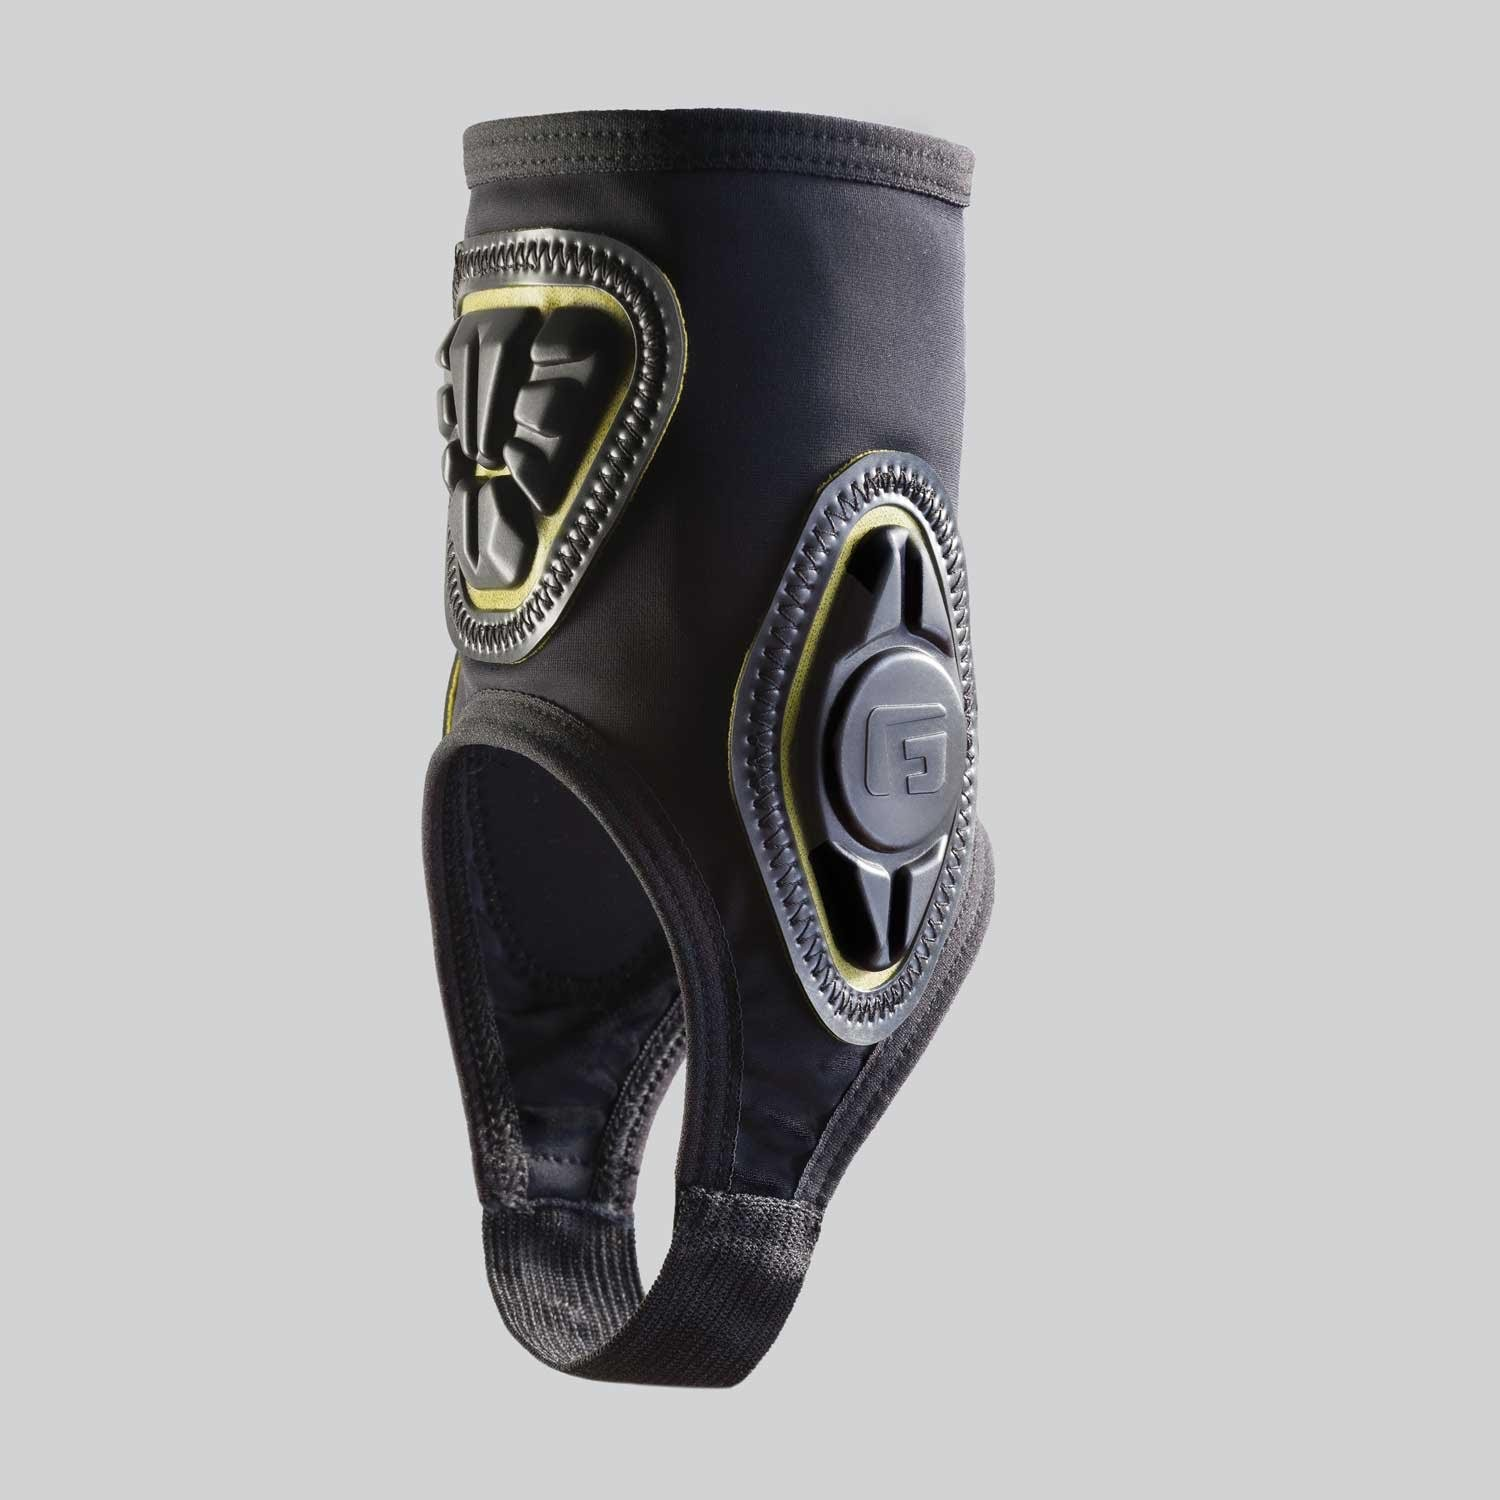 g-form-pro-ankle-guard-south-africa-1